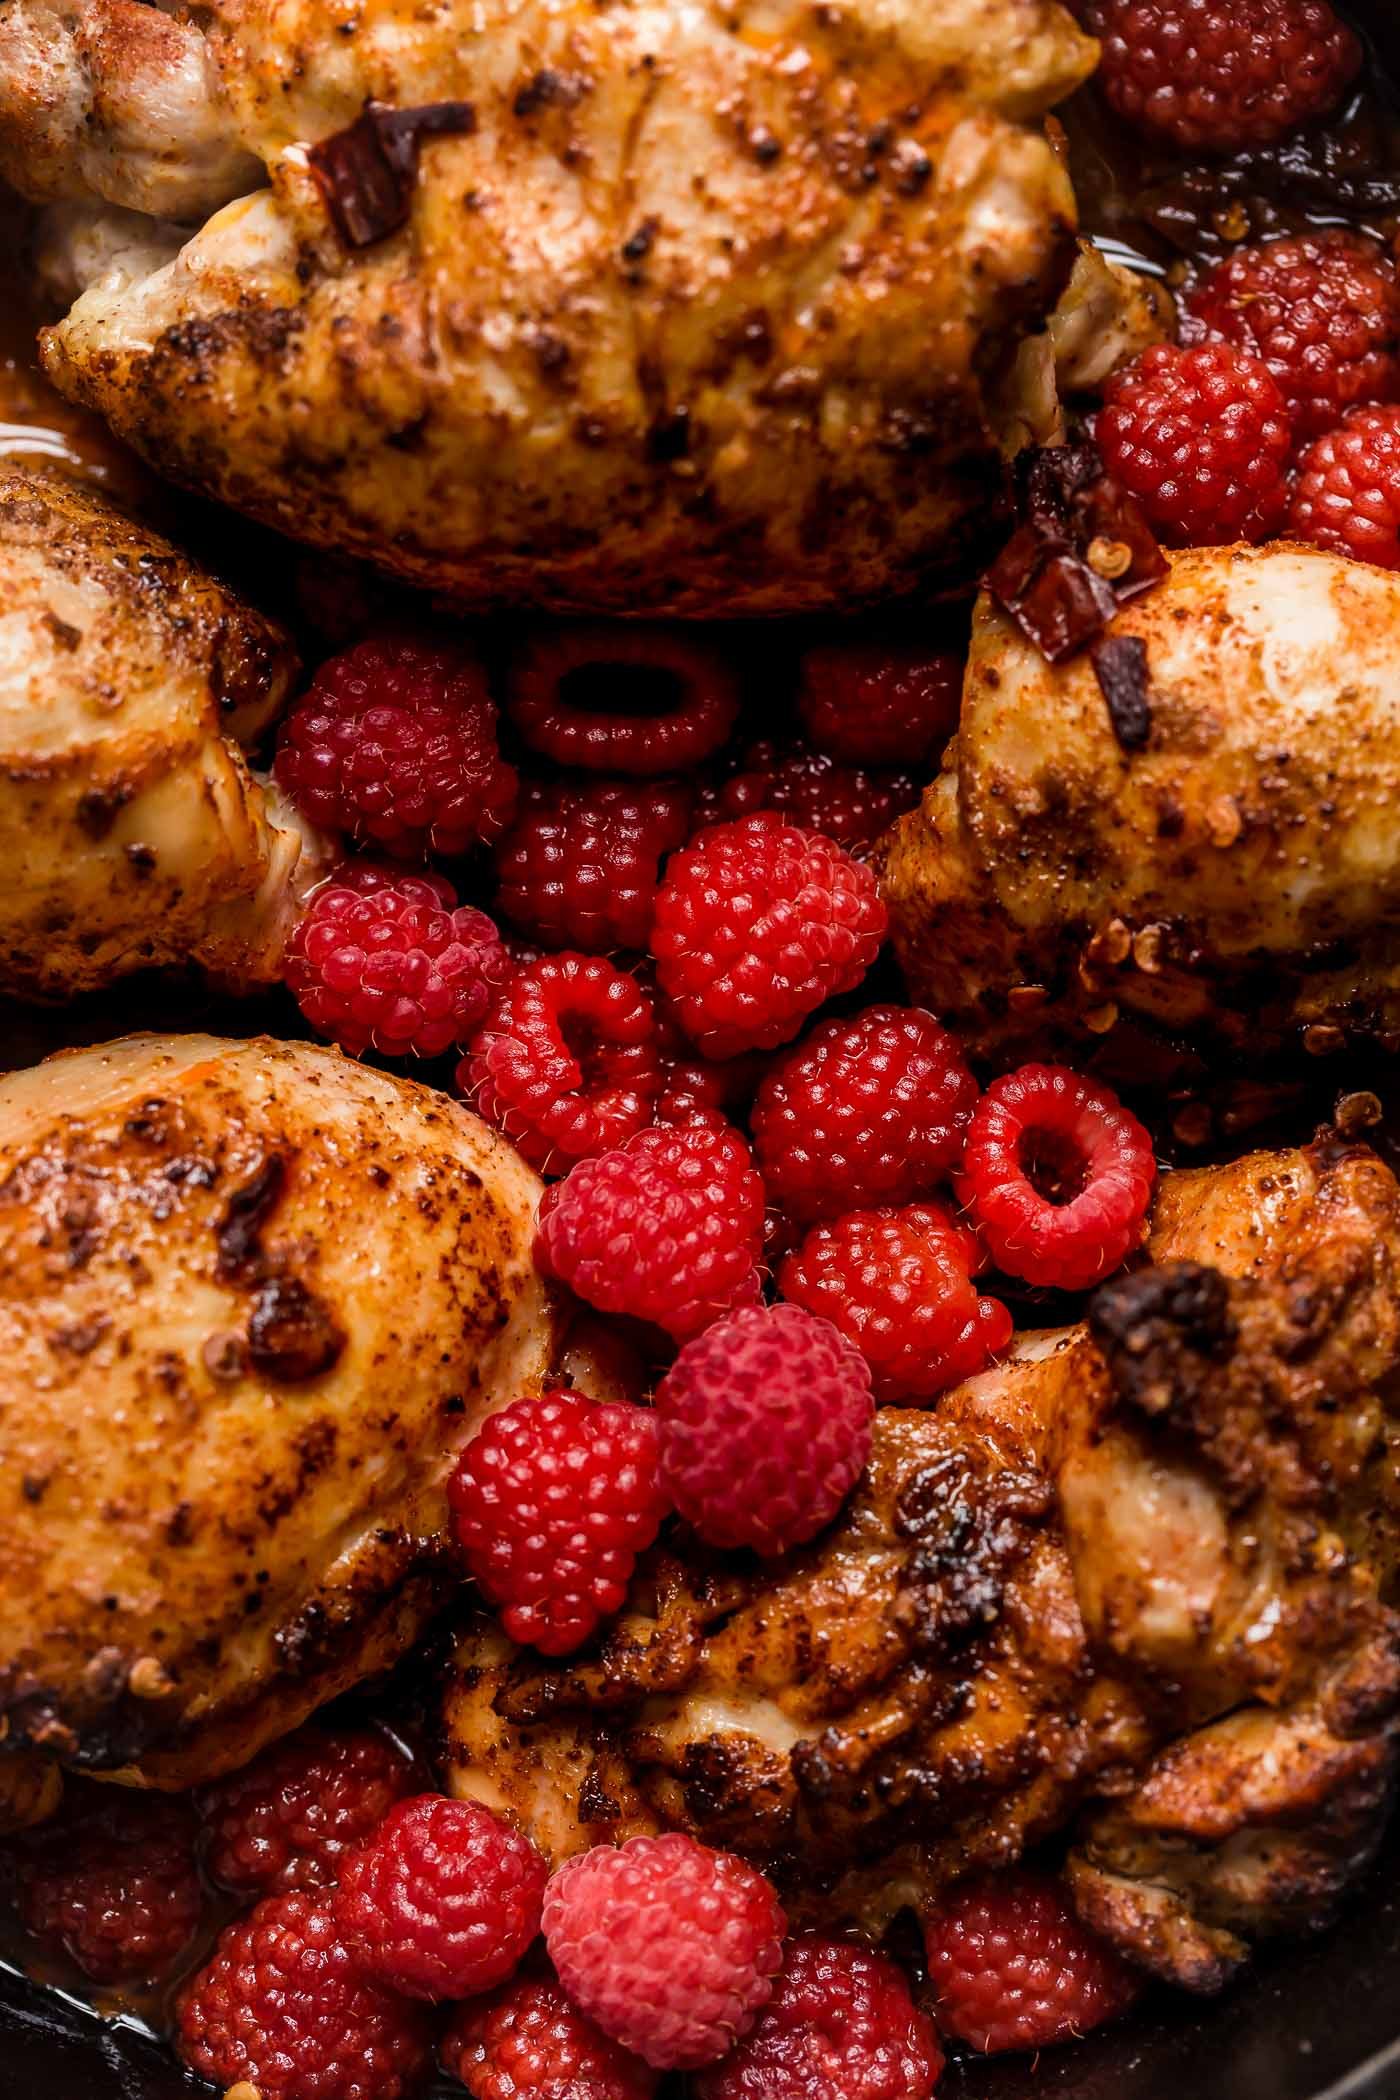 an easy one-skillet recipe for chipotle raspberry chicken, served overtop an autumn hummus bowl with creamy, garlicky hummus, finely shredded kale, wild rice, goat cheese, & some extra raspberries. chipotle raspberry chicken autumn hummus bowls are the perfect healthy & easy weeknight dinner, or an easy meal to prep for grab-&-go lunches this week! #hummusbowl #chipotleraspberrychicken #raspberryrecipes #raspberrydinnerrecipes #healthyrecipe #skilletrecipe #bowlrecipe #easyrecipe #mealprep